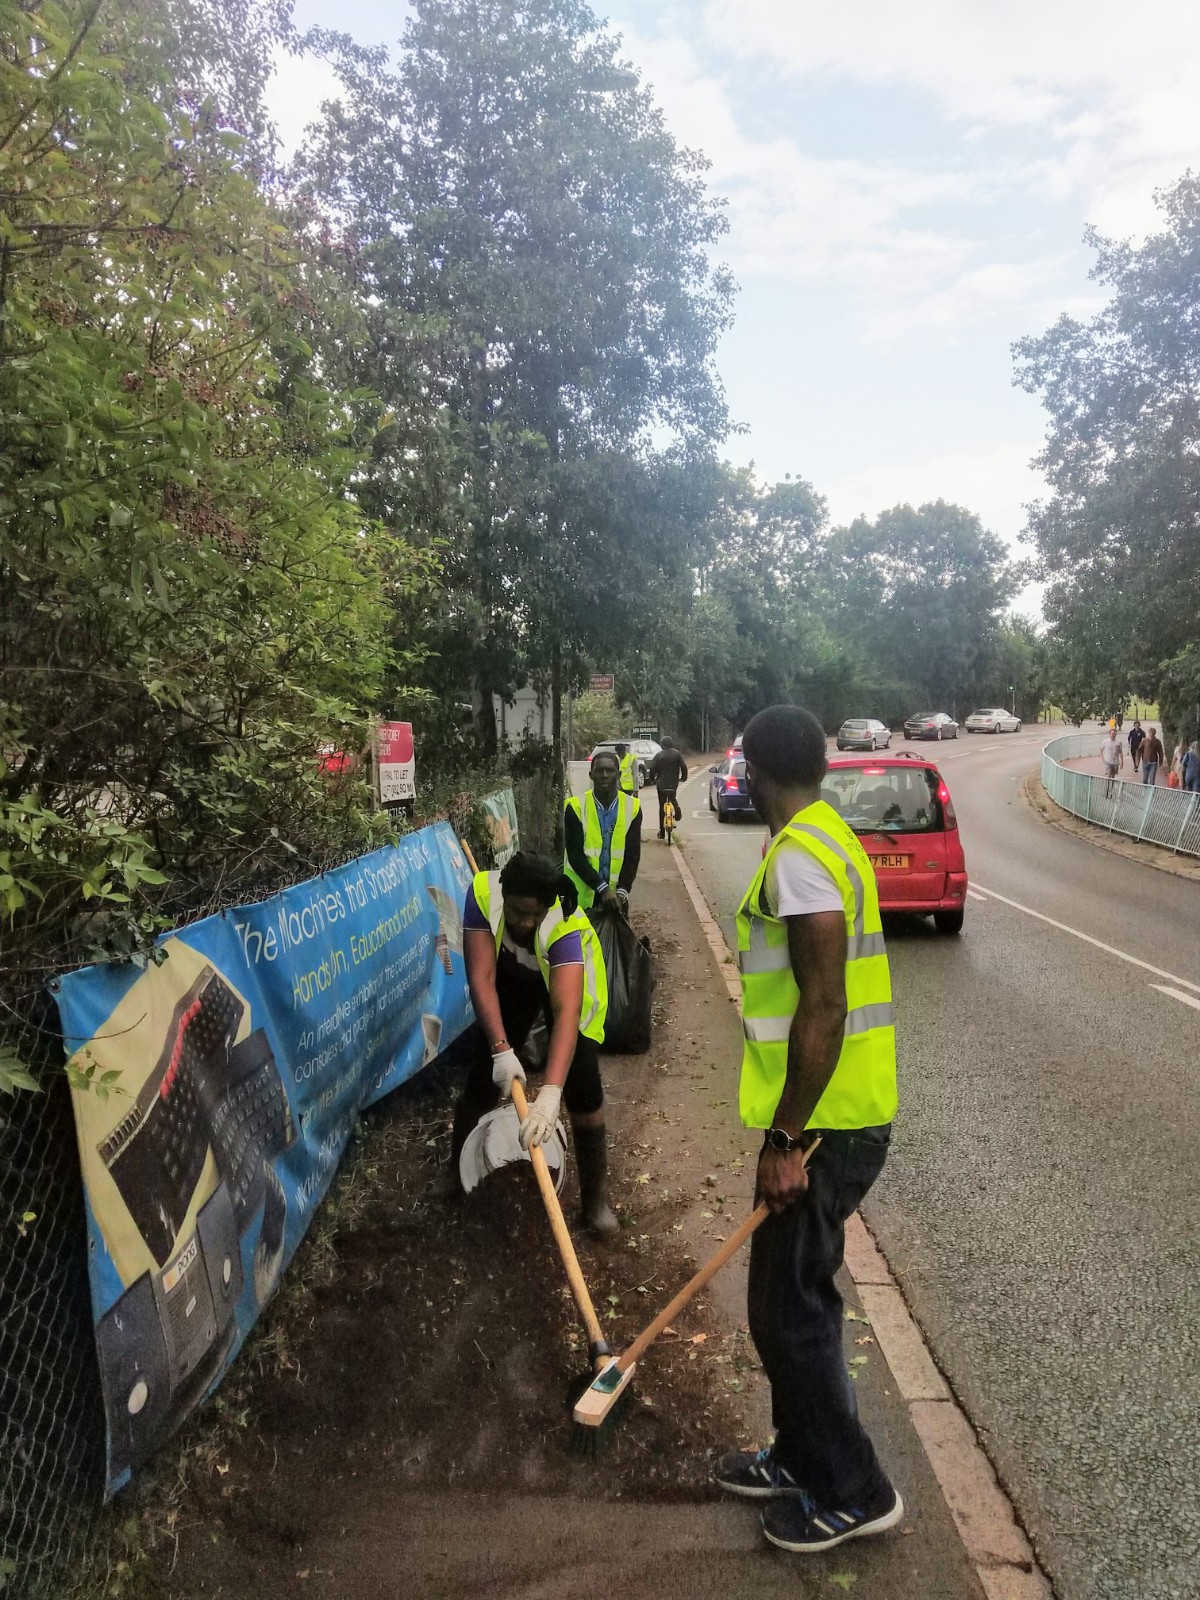 Community Action Day 25th Aug 2018